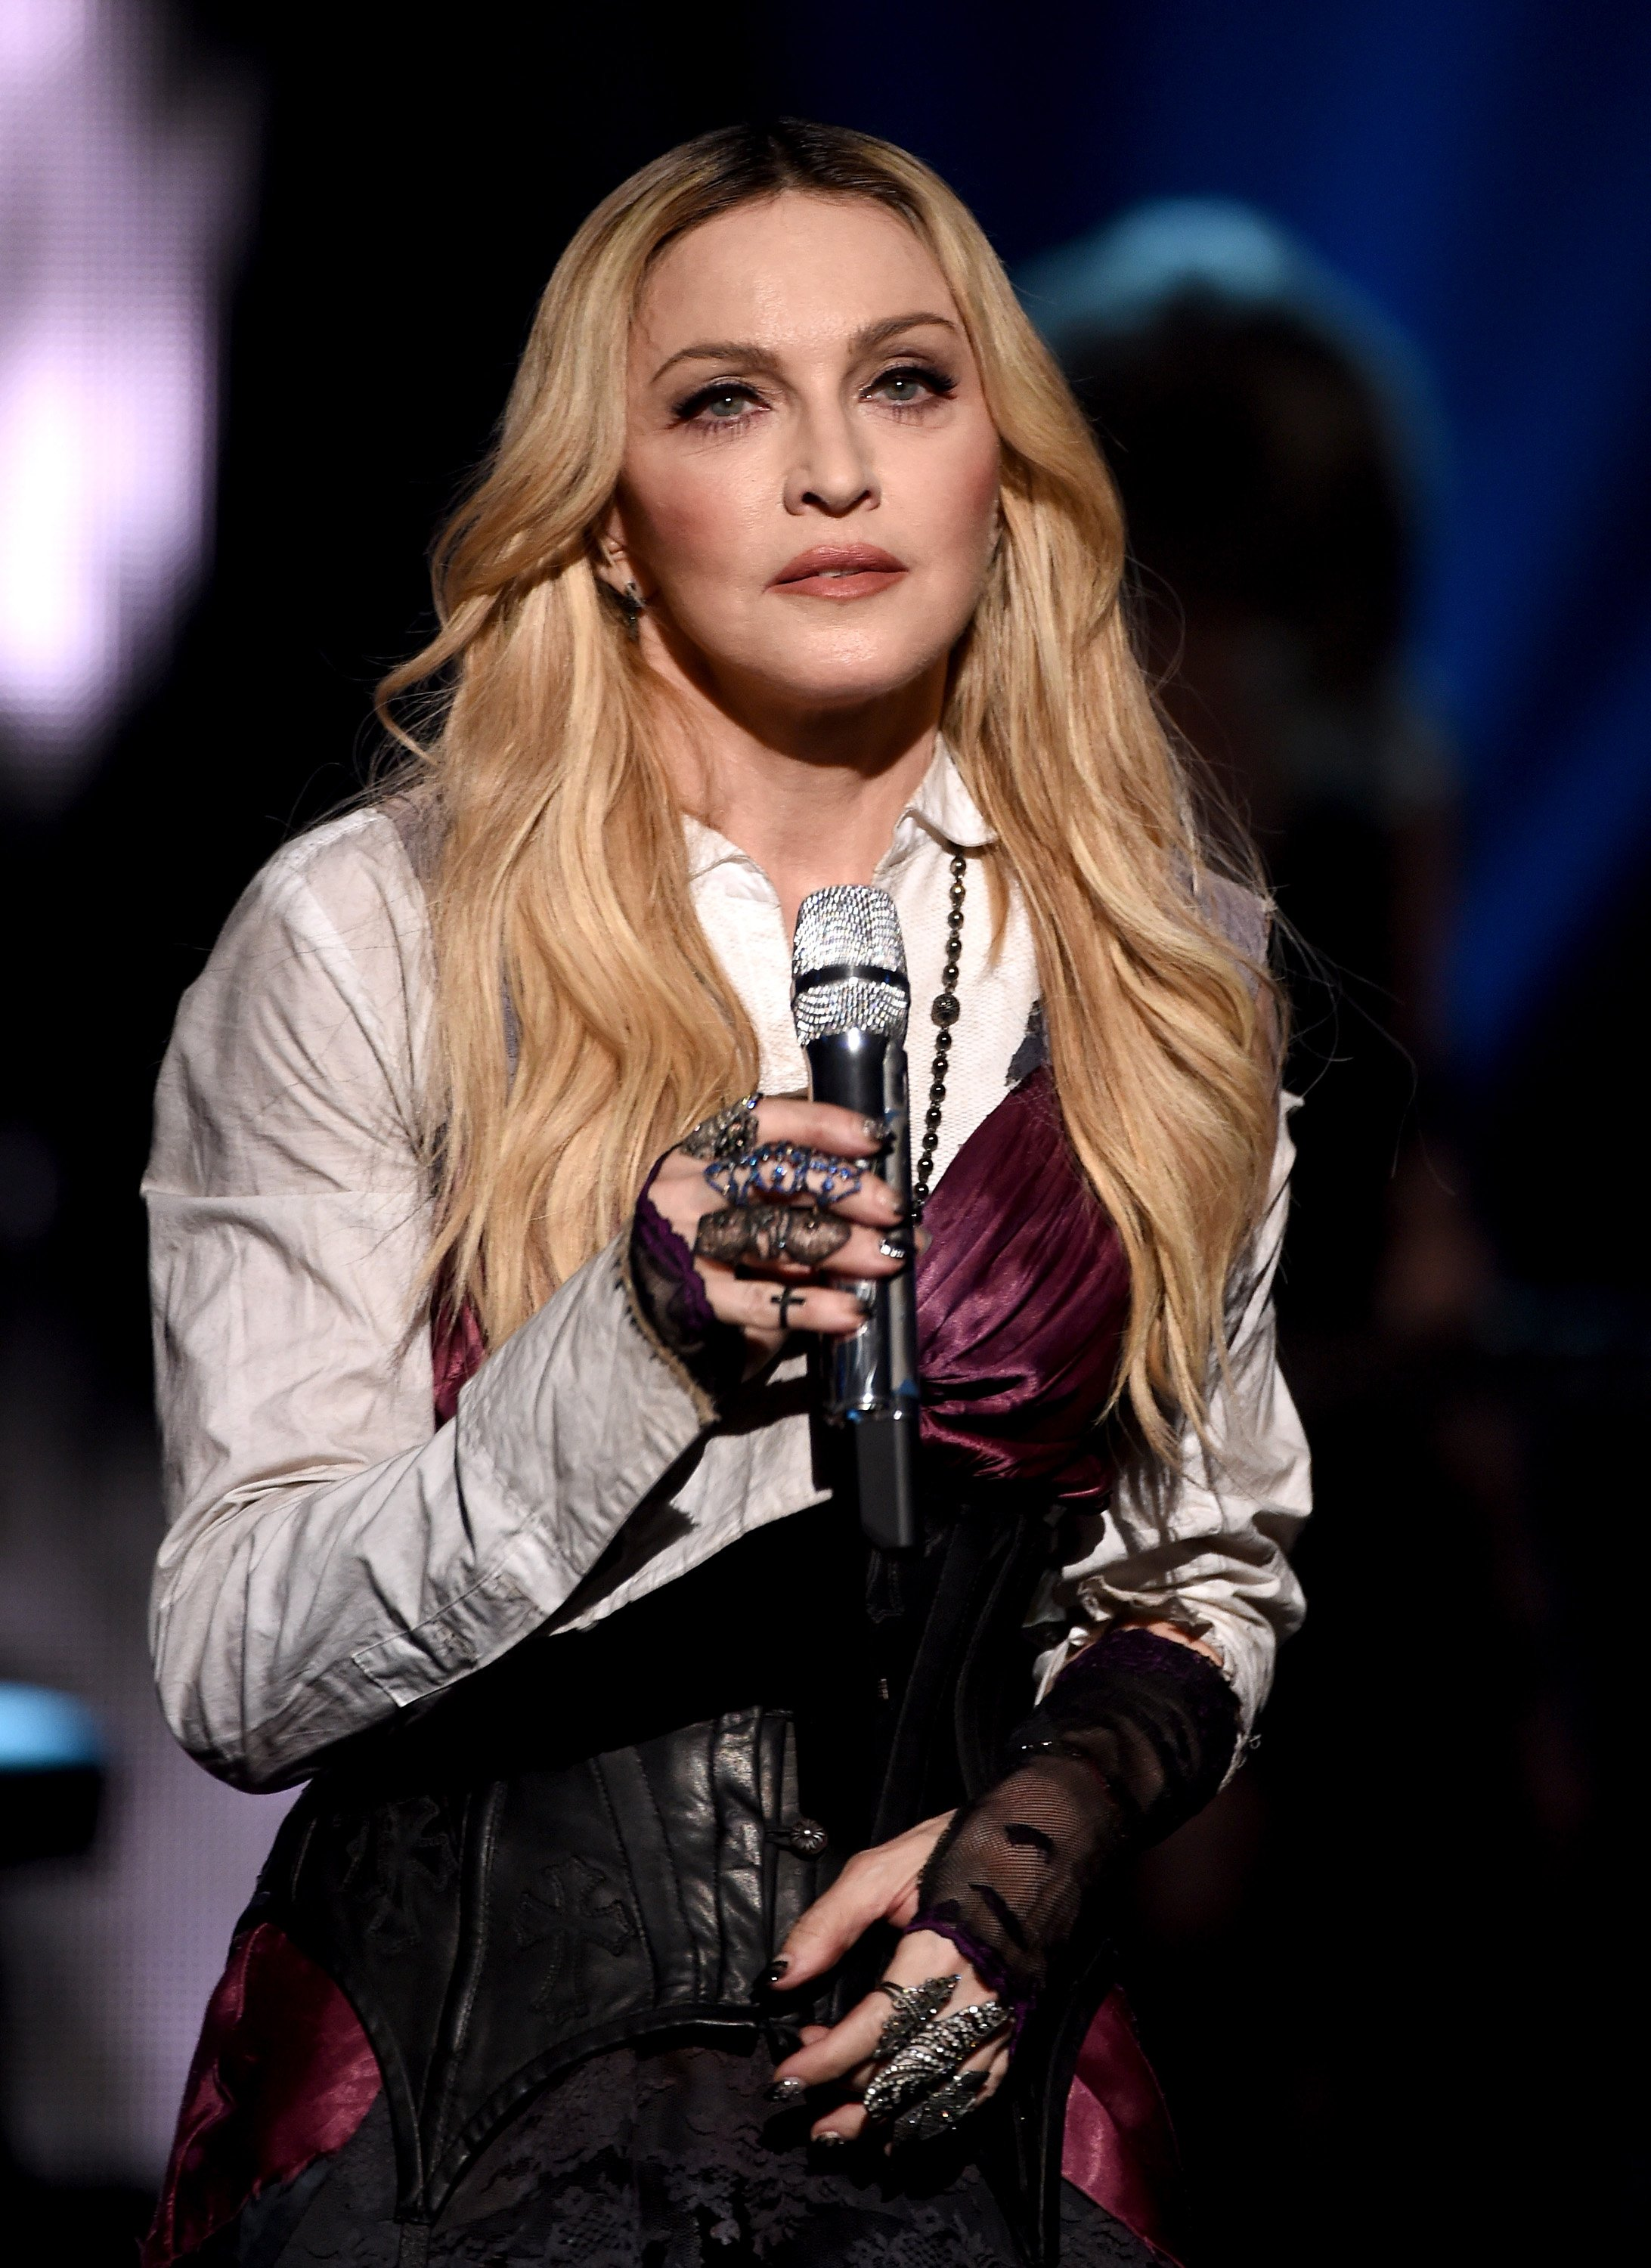 Image Credits: Getty Images / Kevin Winter | Singer Madonna performs 'Ghost Town' onstage during the 2015 iHeartRadio Music Awards which broadcasted live on NBC from The Shrine Auditorium on March 29, 2015 in Los Angeles, California.